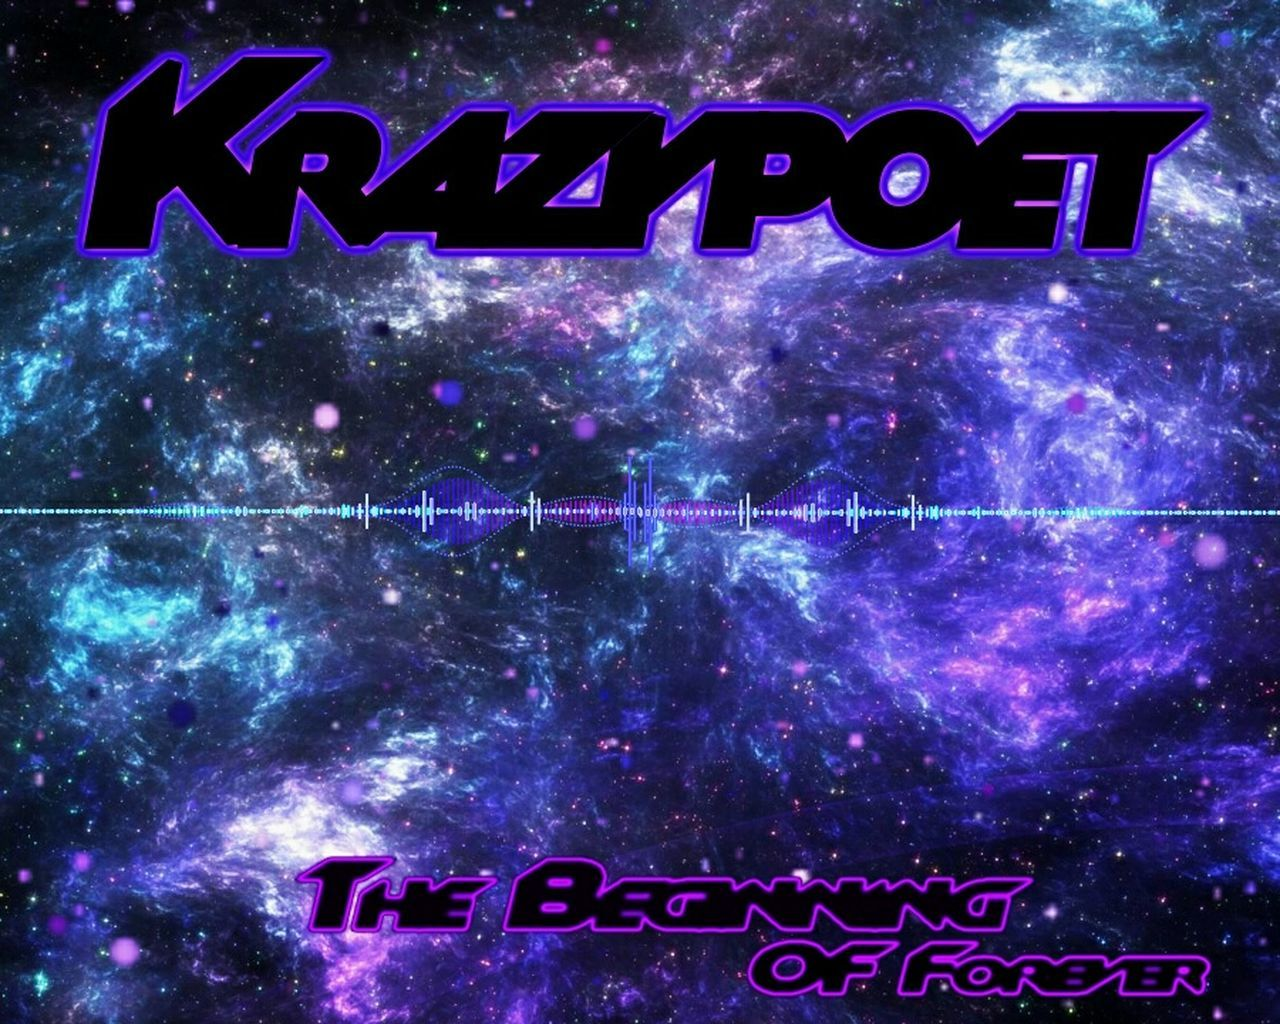 Album Krazypoet Music Art Aftereffects Peace Inspire Positivity Poetry Electronic Music